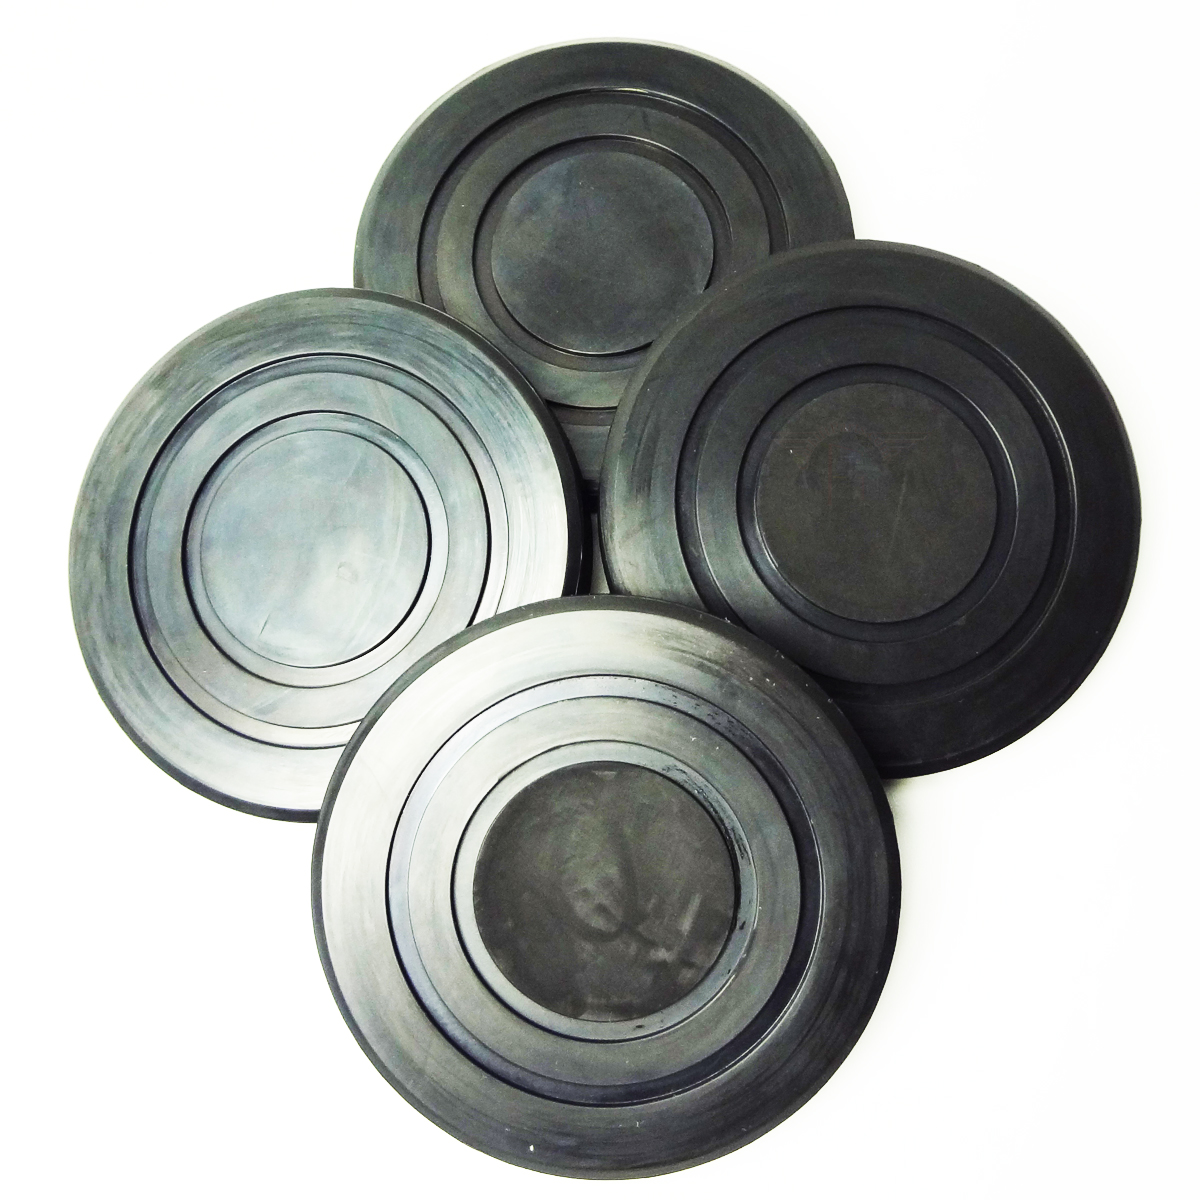 Round Rubber Arm Pads Ammco Lift Quality B2208 set of 4